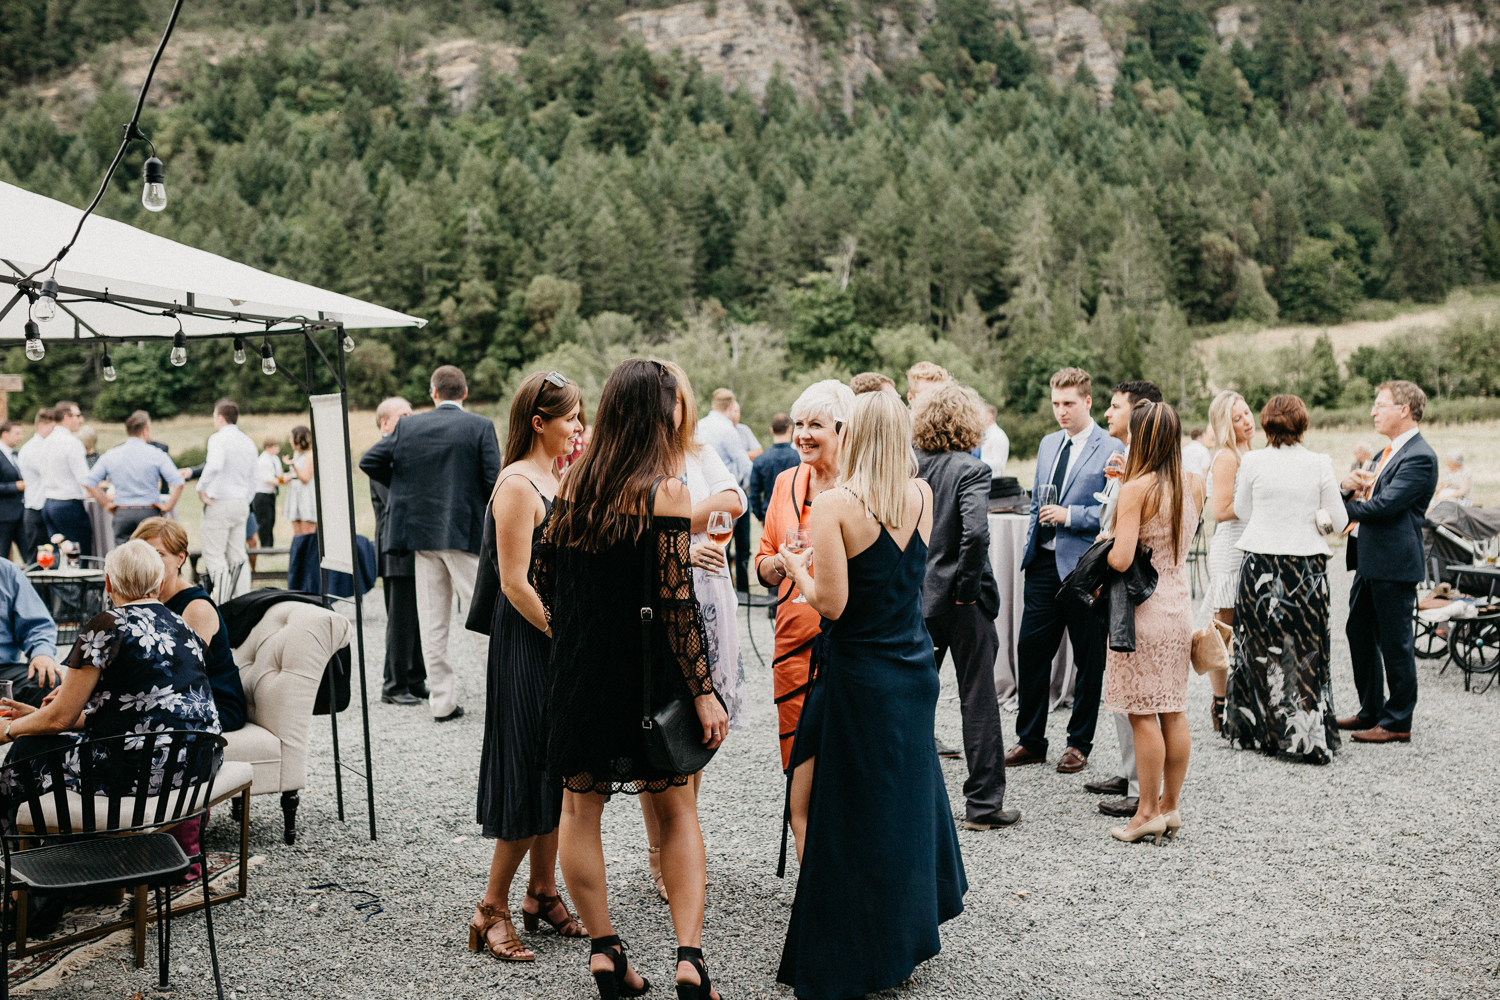 guests mingle at Bird's Eye Cove wedding, Vancouver Island